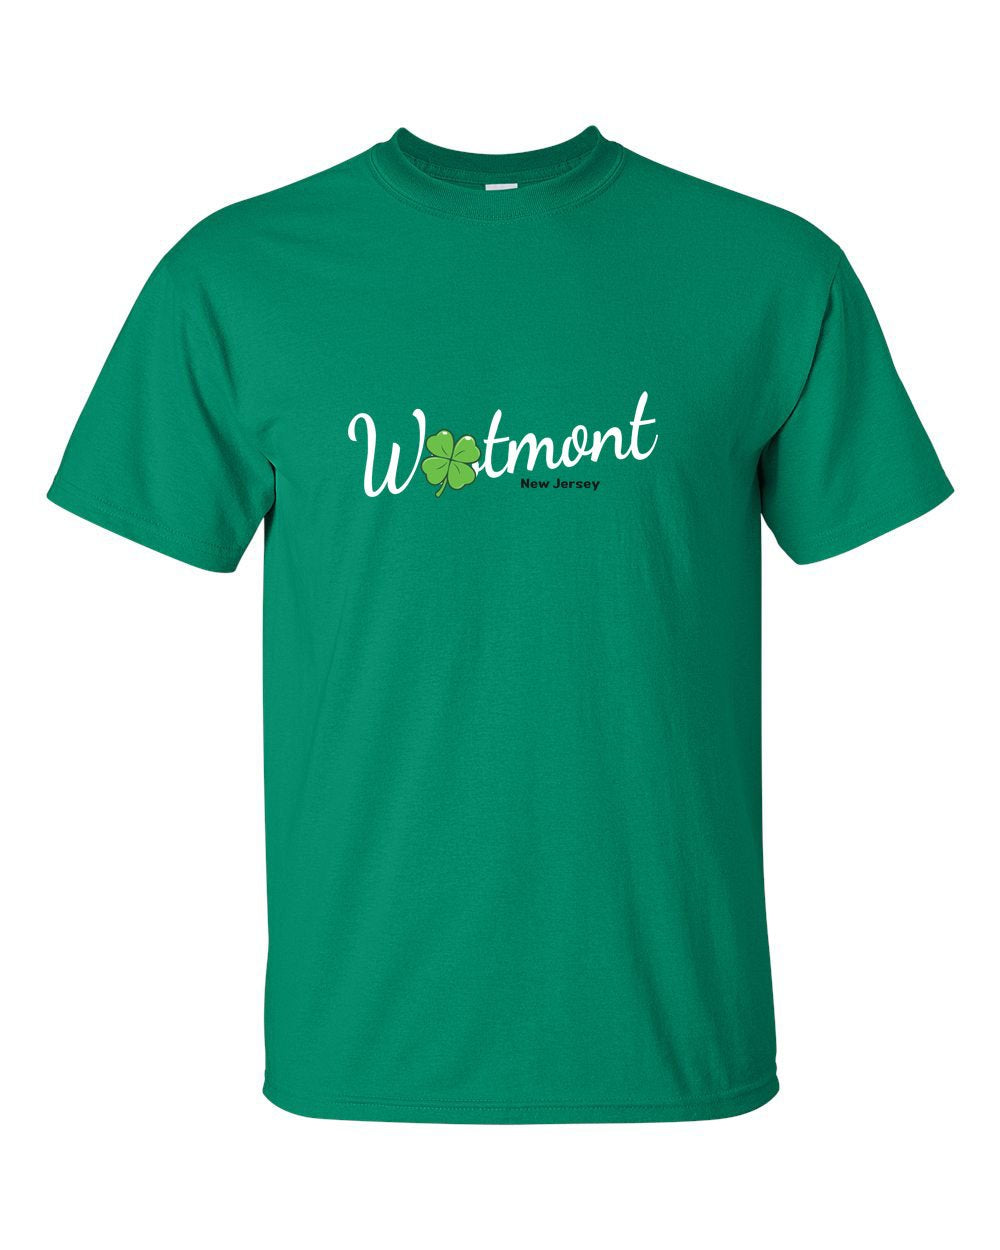 Irish Westmont Mens/Unisex T-Shirt